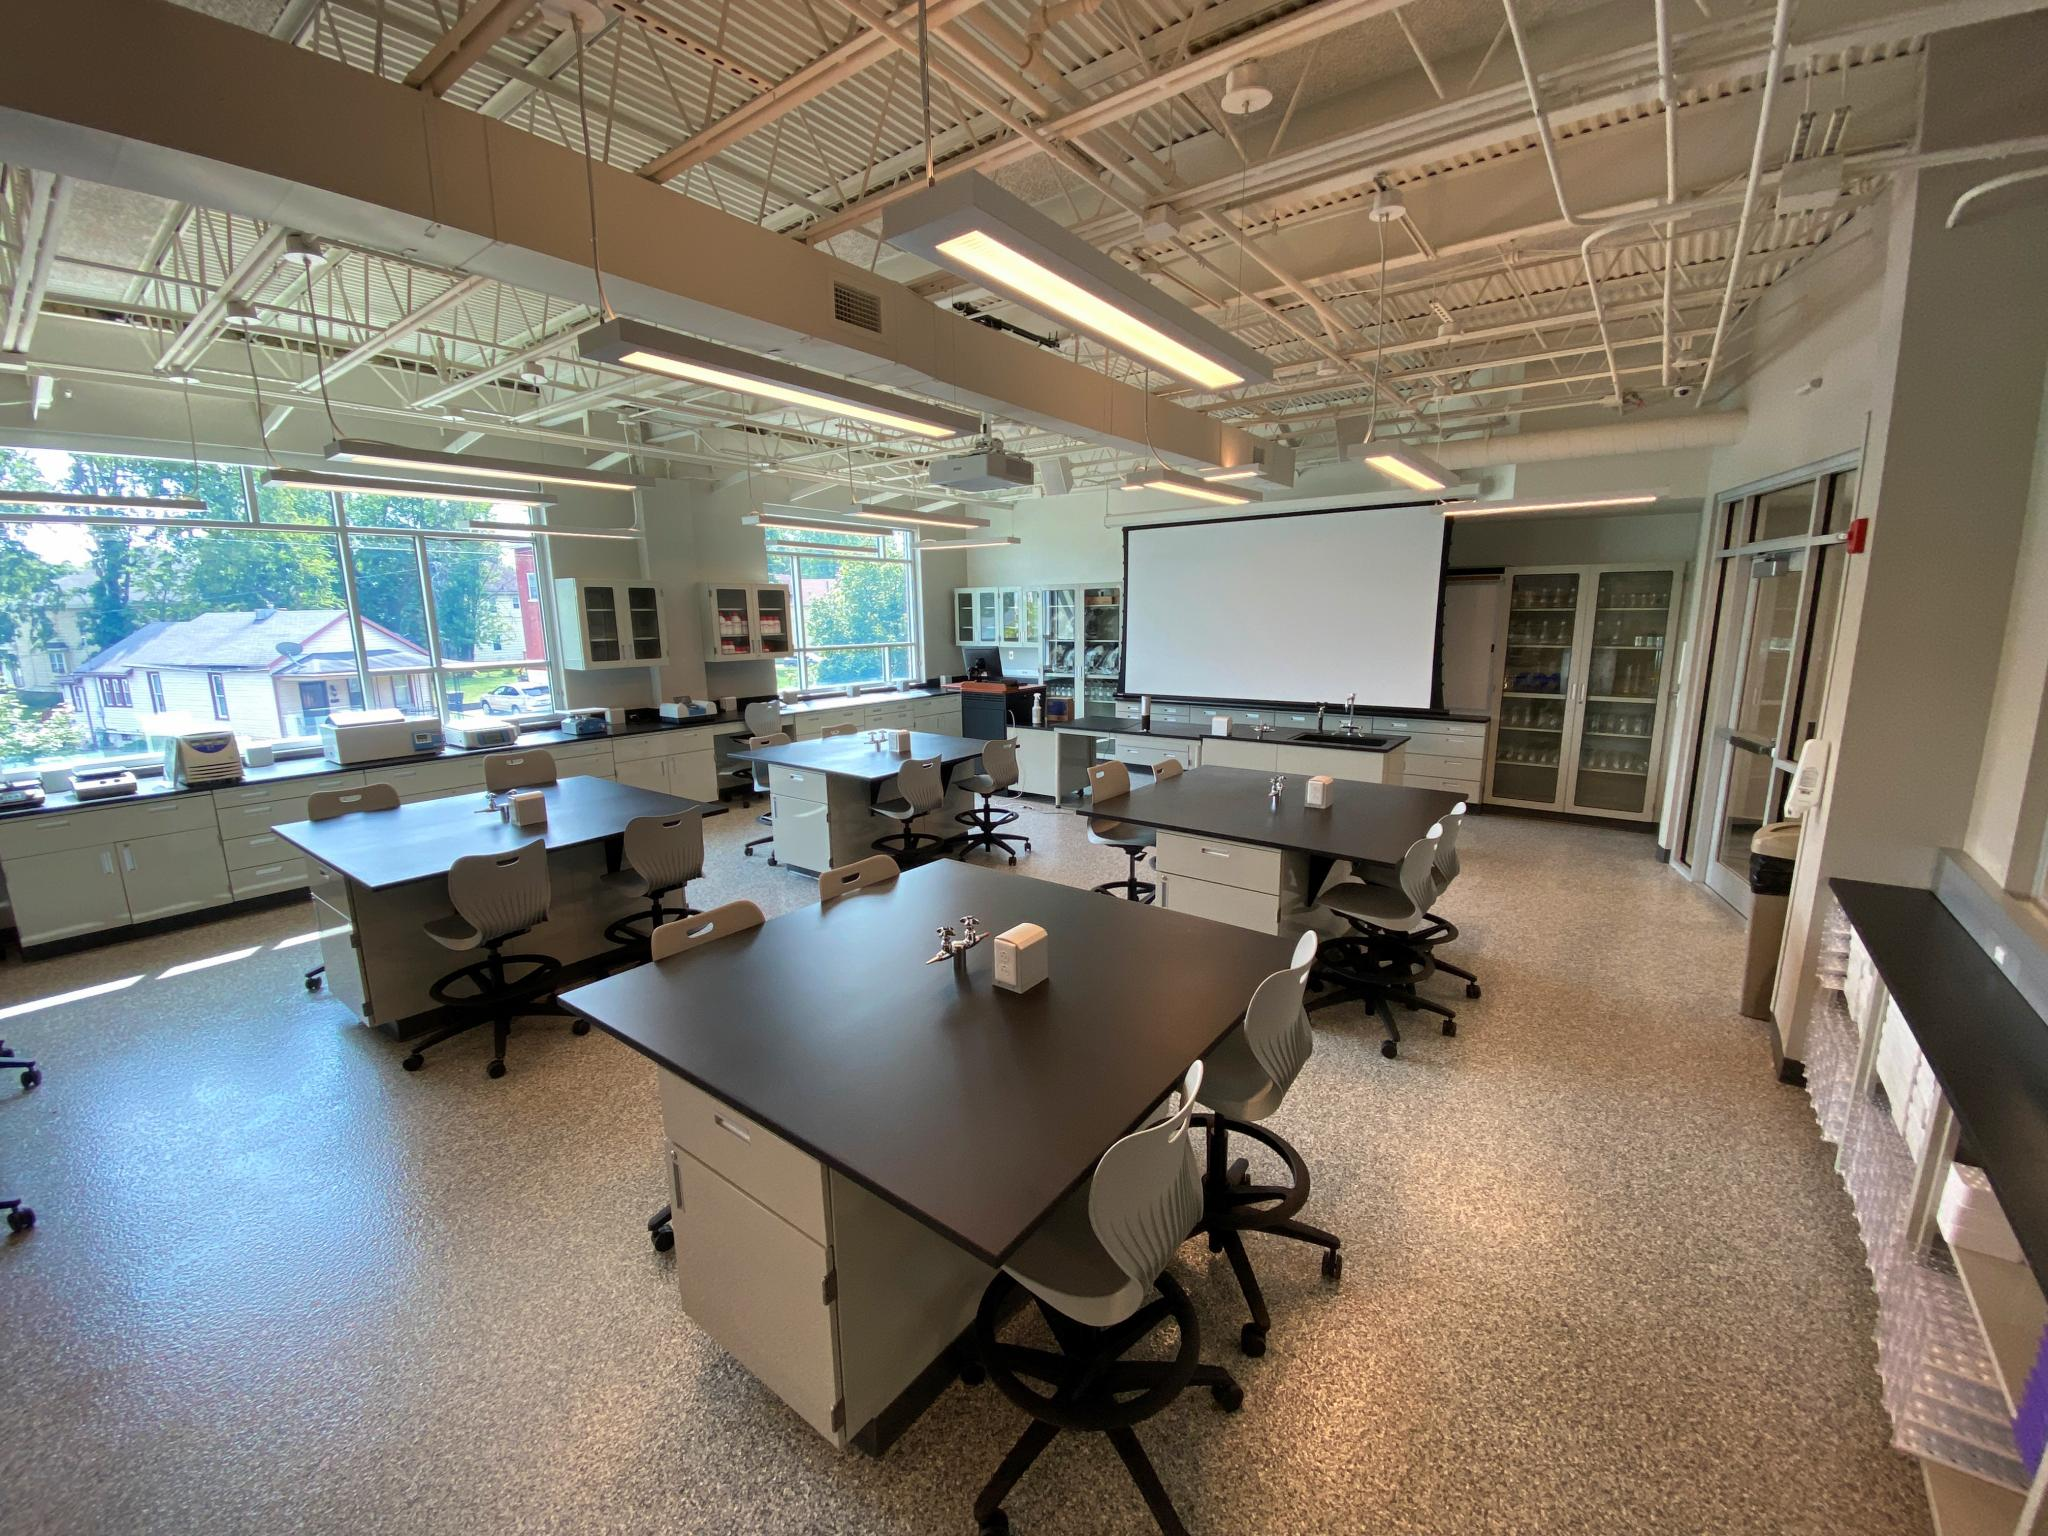 image of traditional science lab with counters